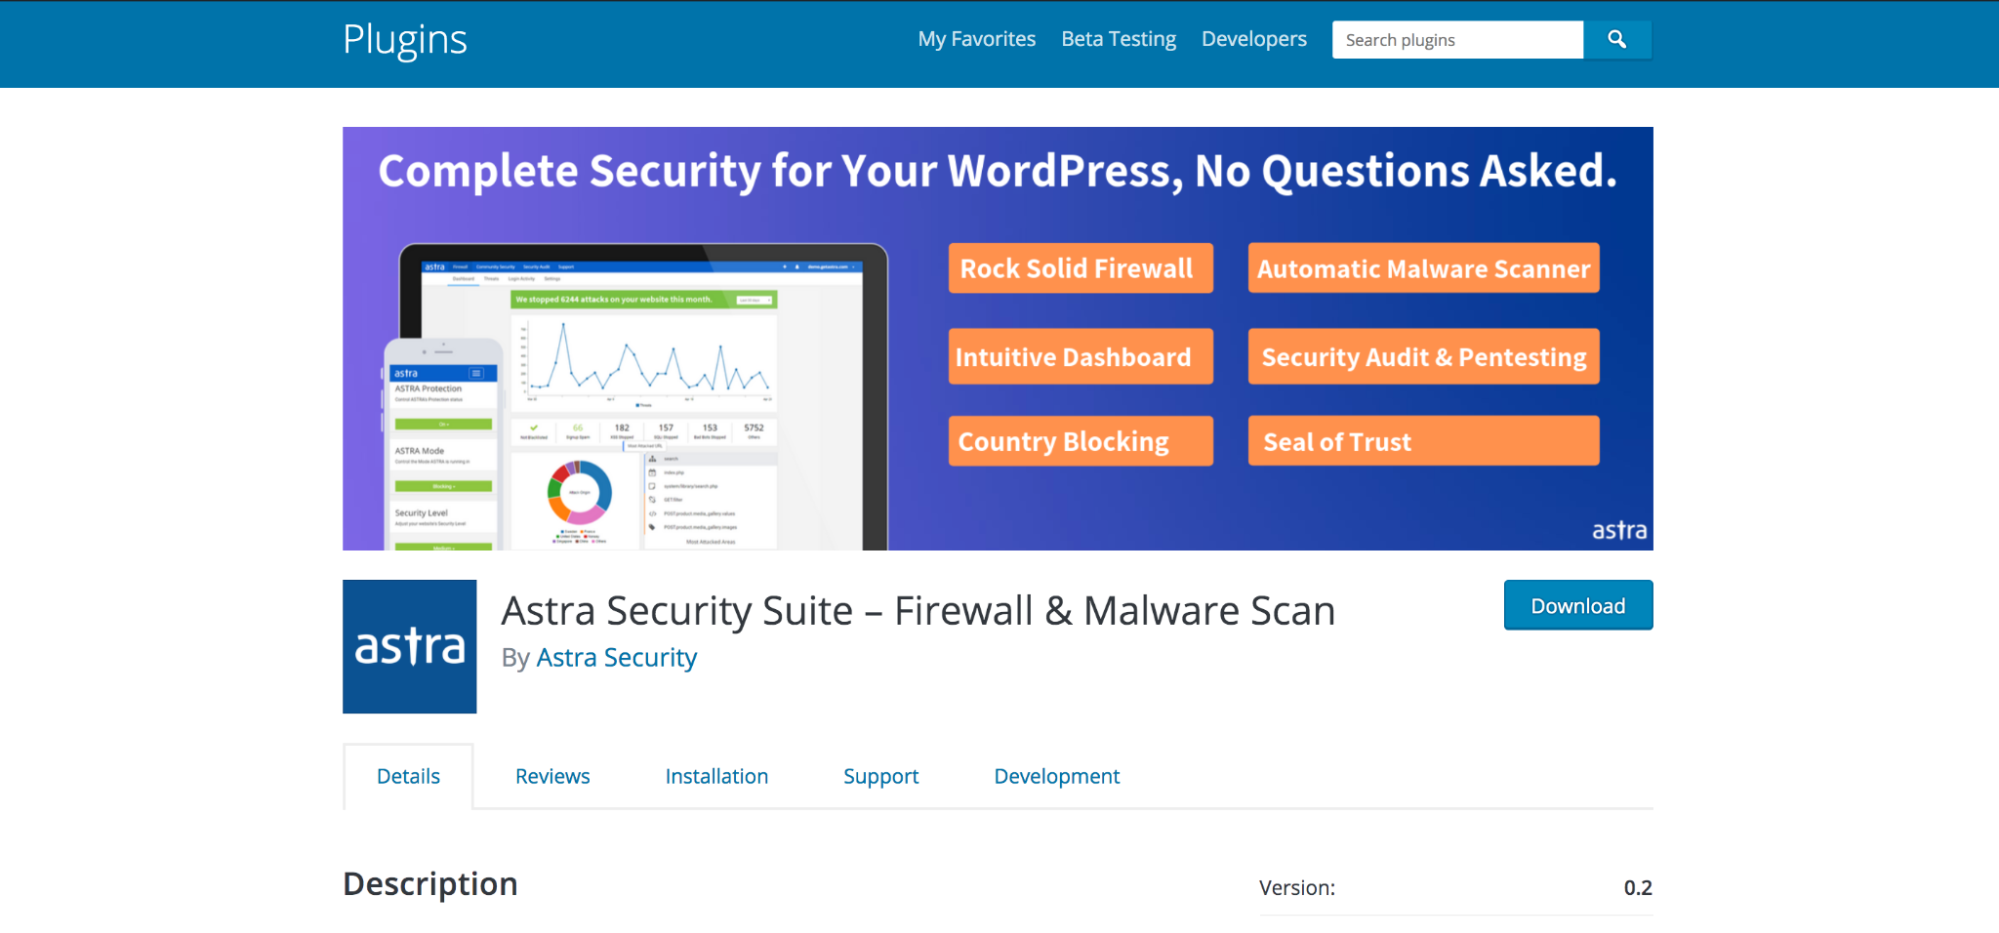 Astra Security page in the WordPress repository